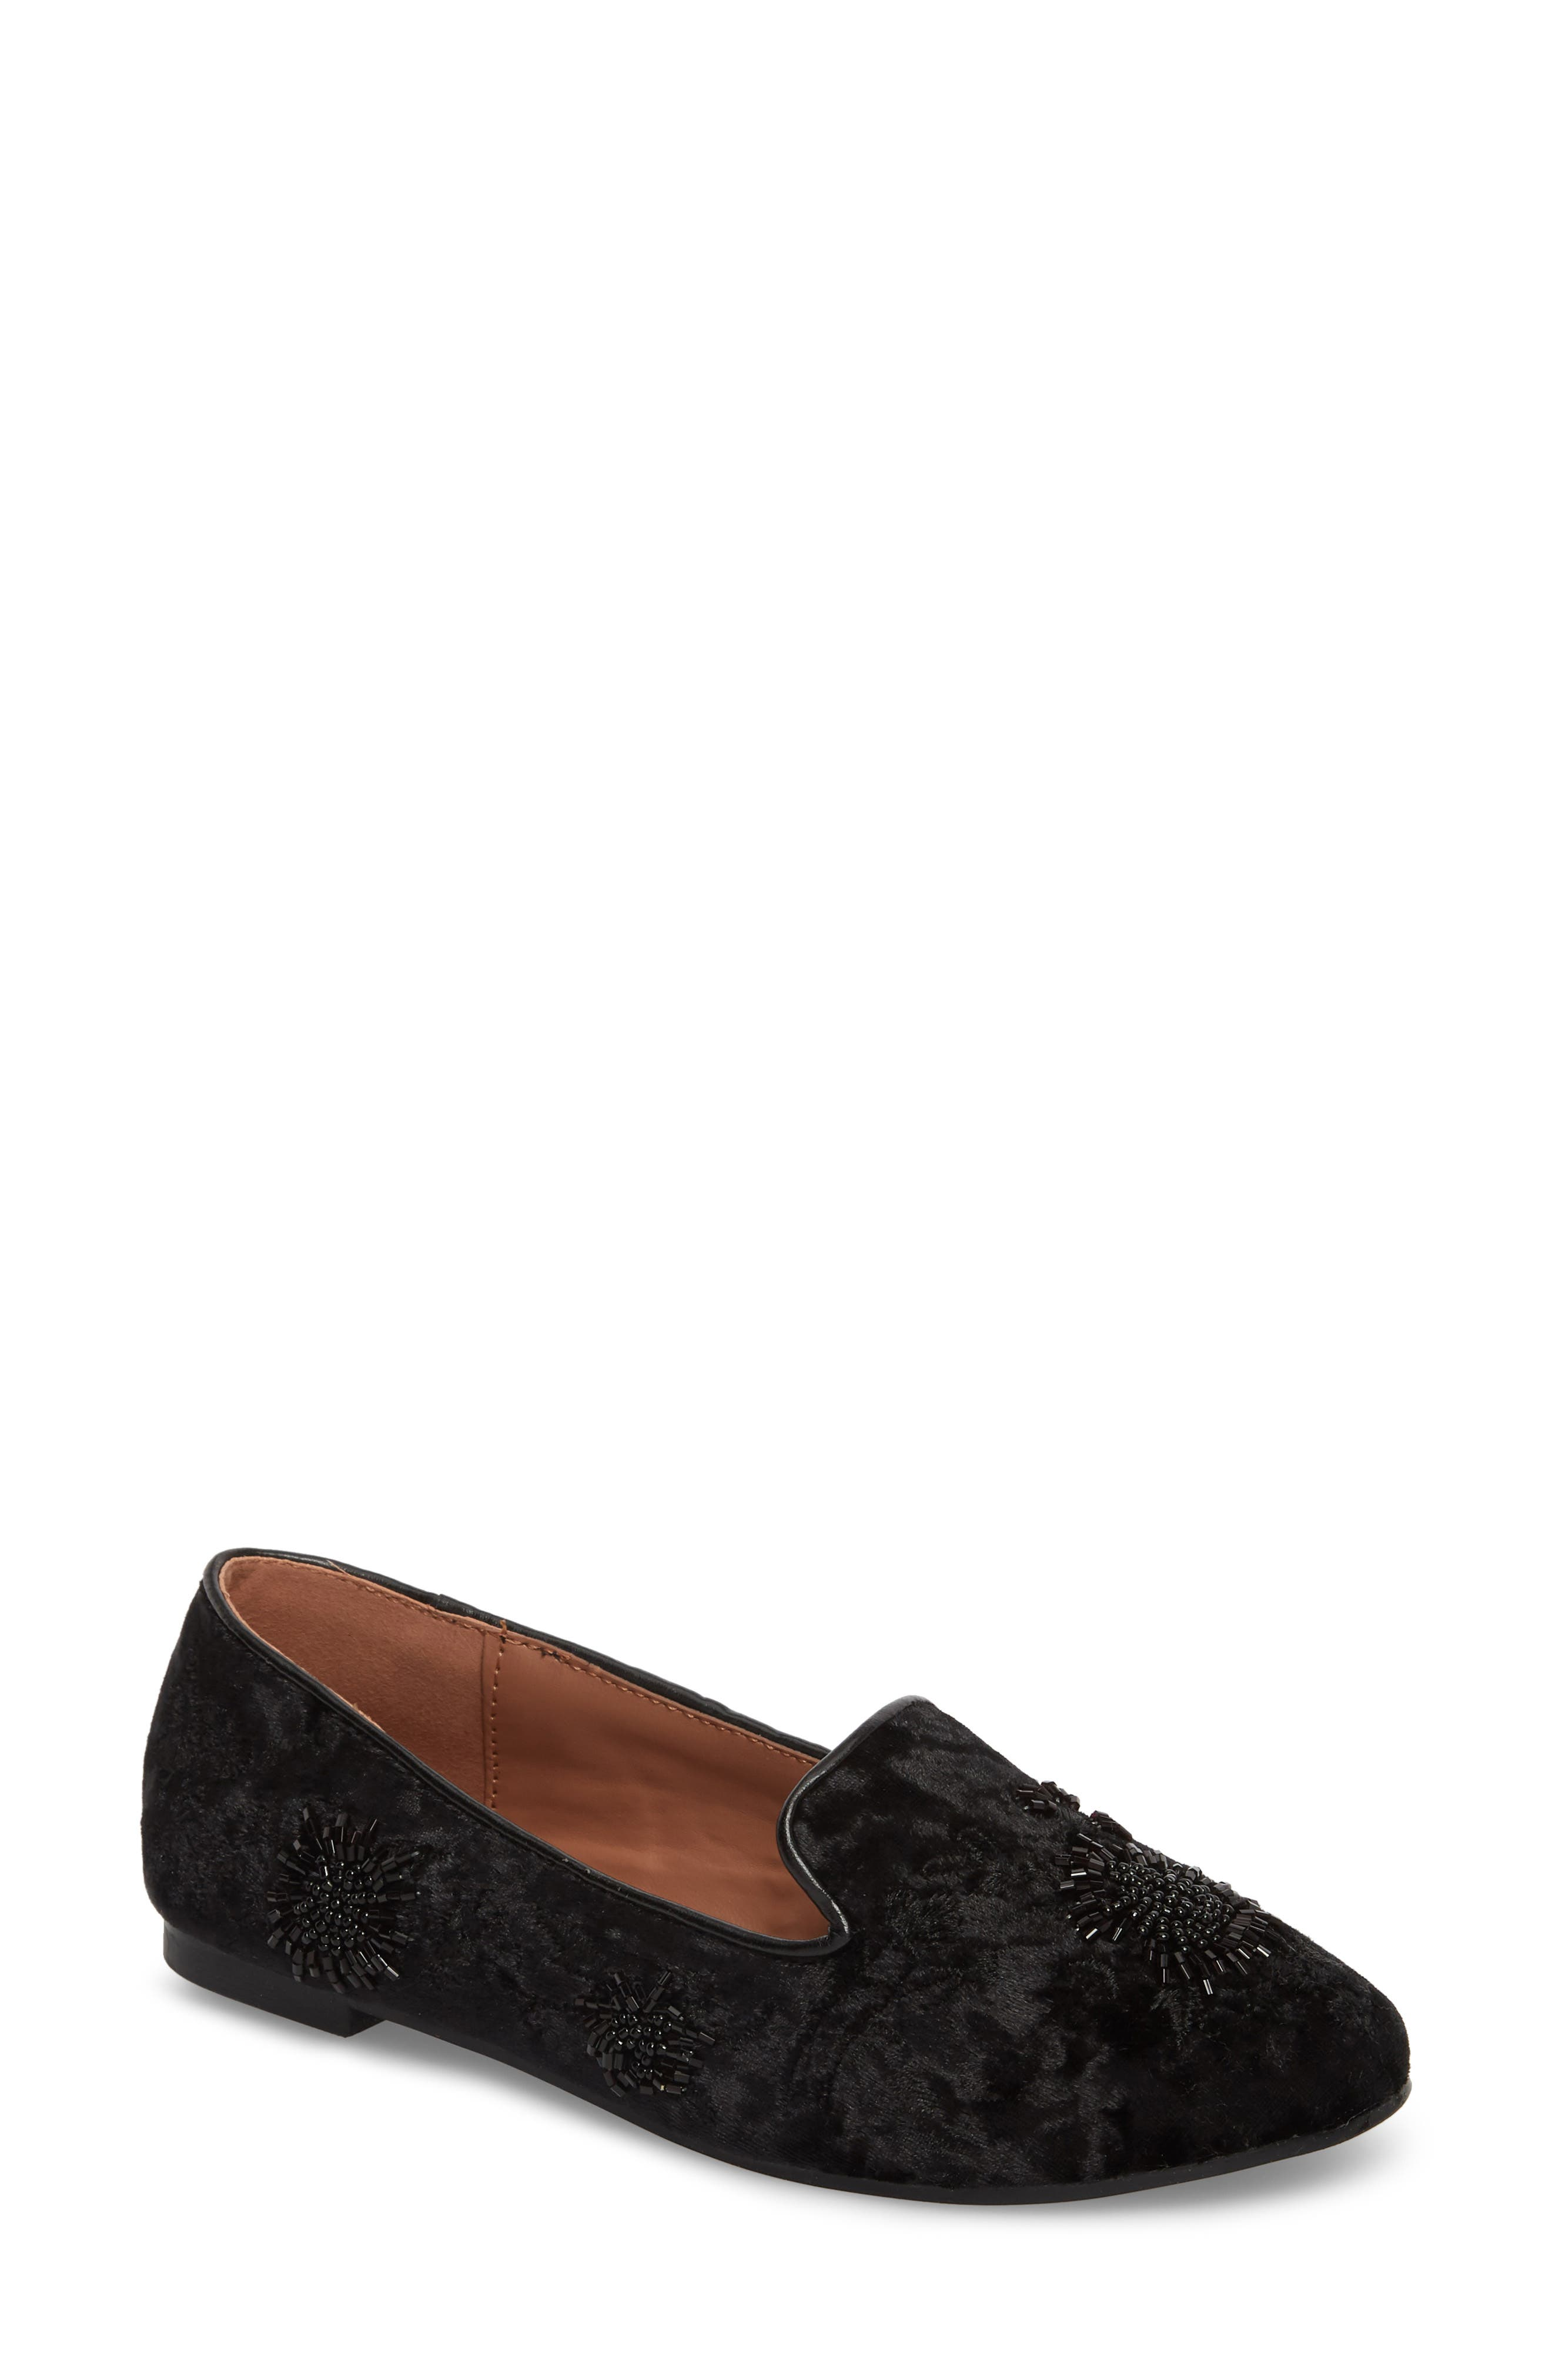 Syrup Embellished Loafer,                             Main thumbnail 1, color,                             Black